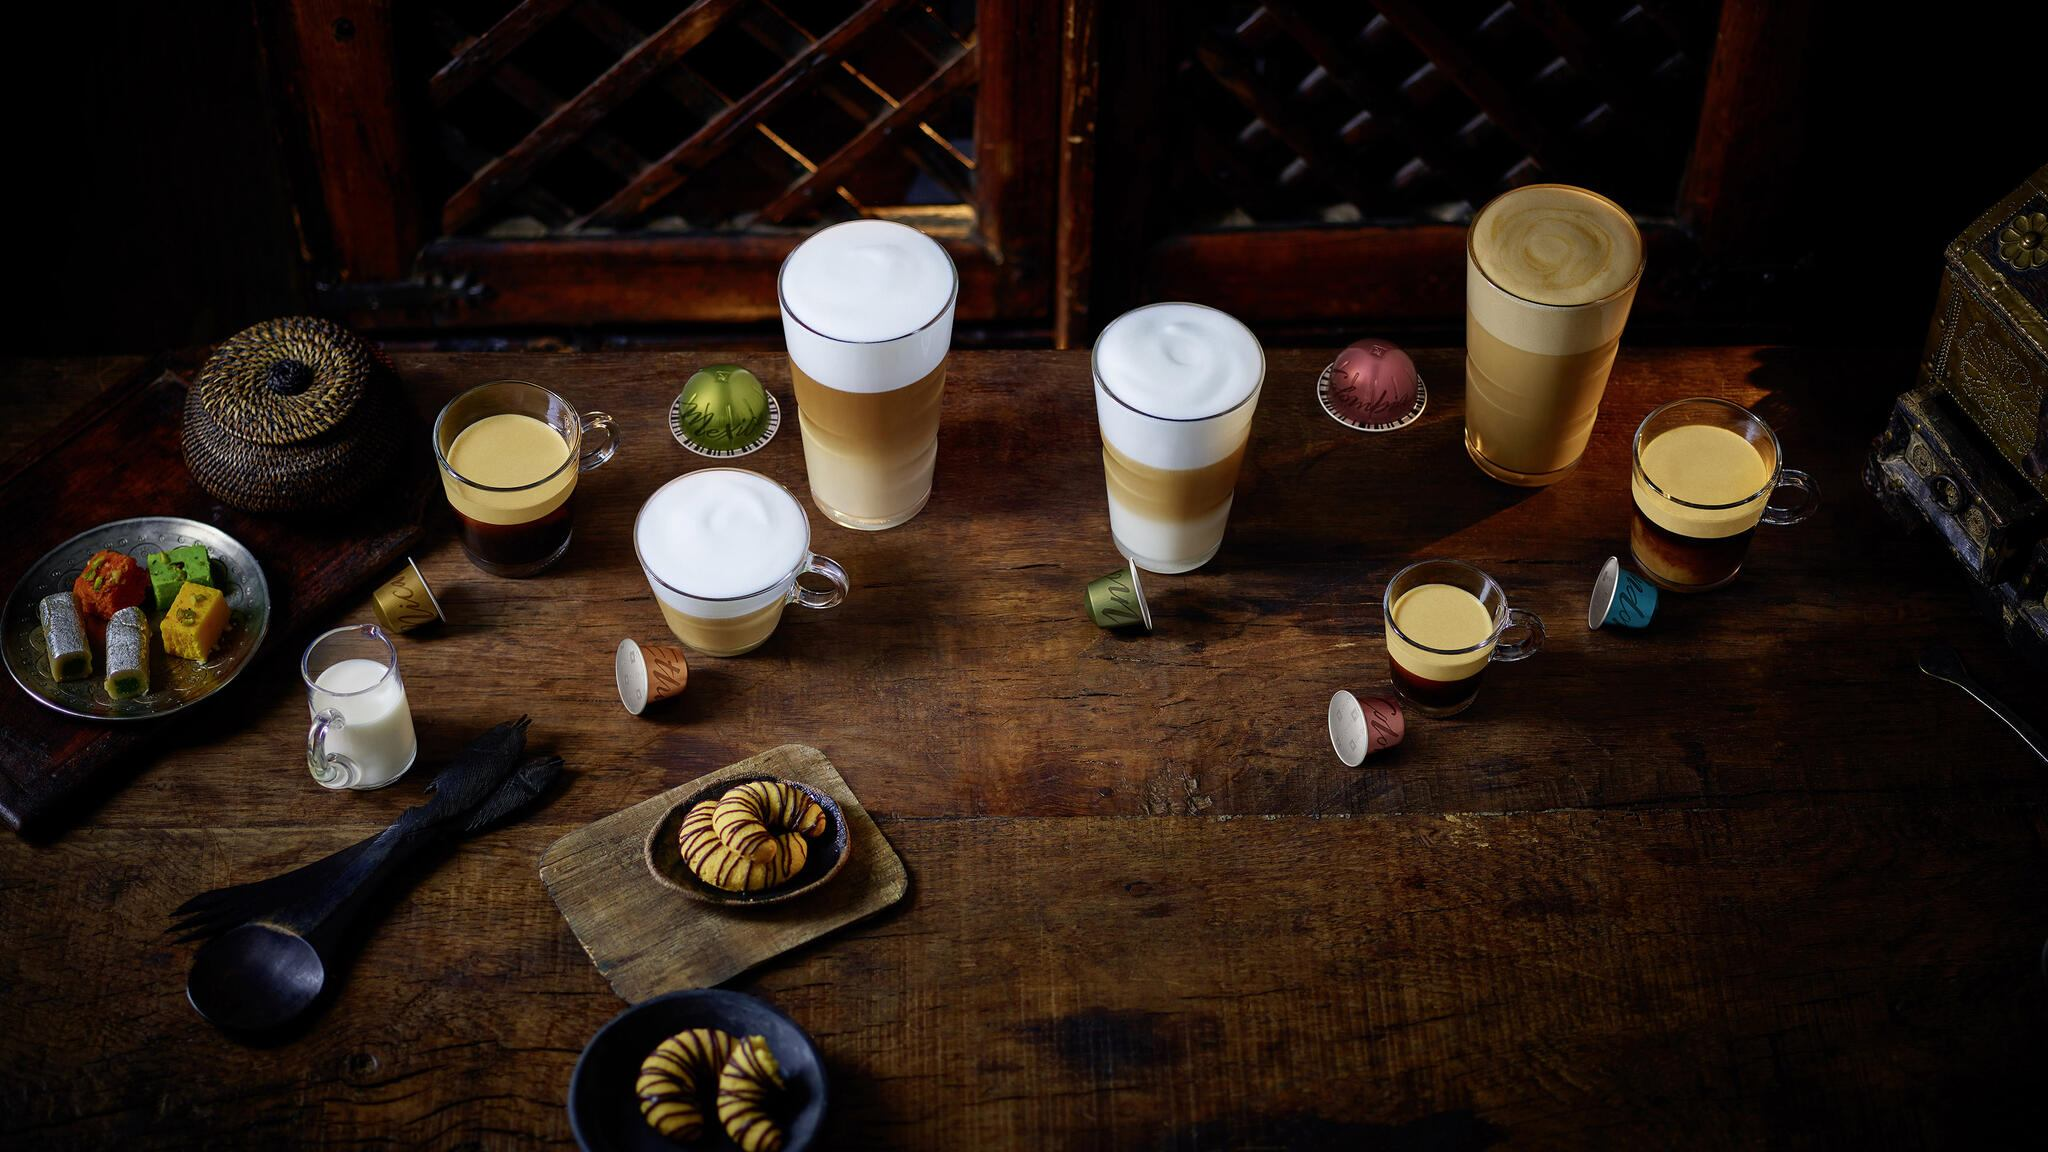 gm nespresso nouvelle gamme